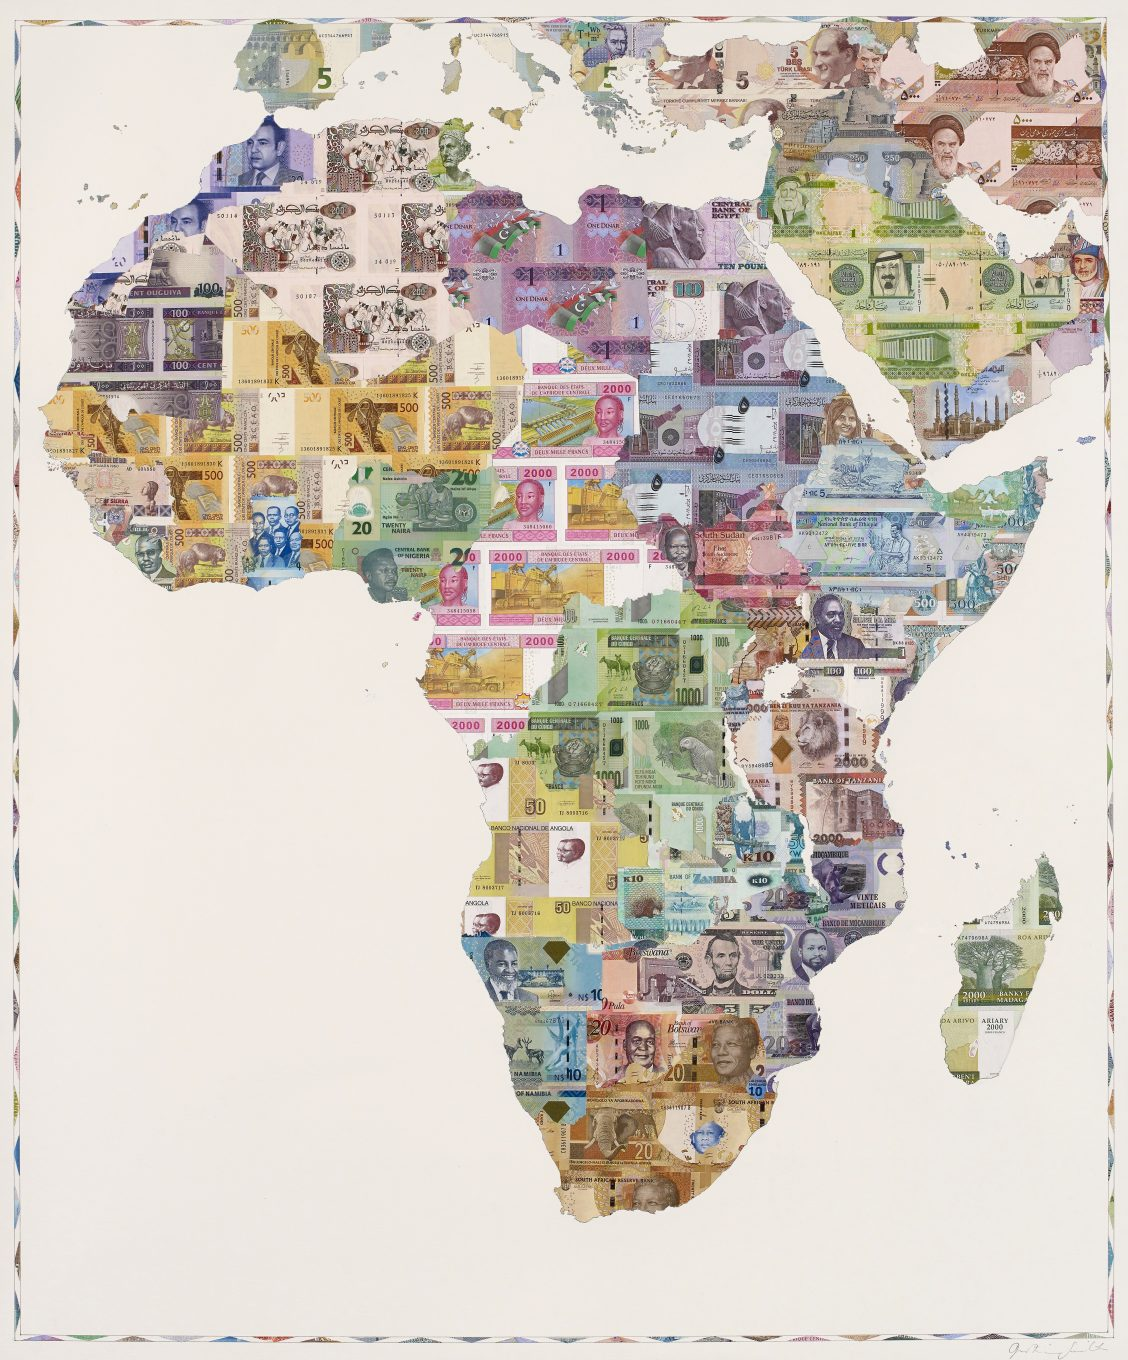 Africa Map 2015 Money Map of Africa 2015 – Justine Smith